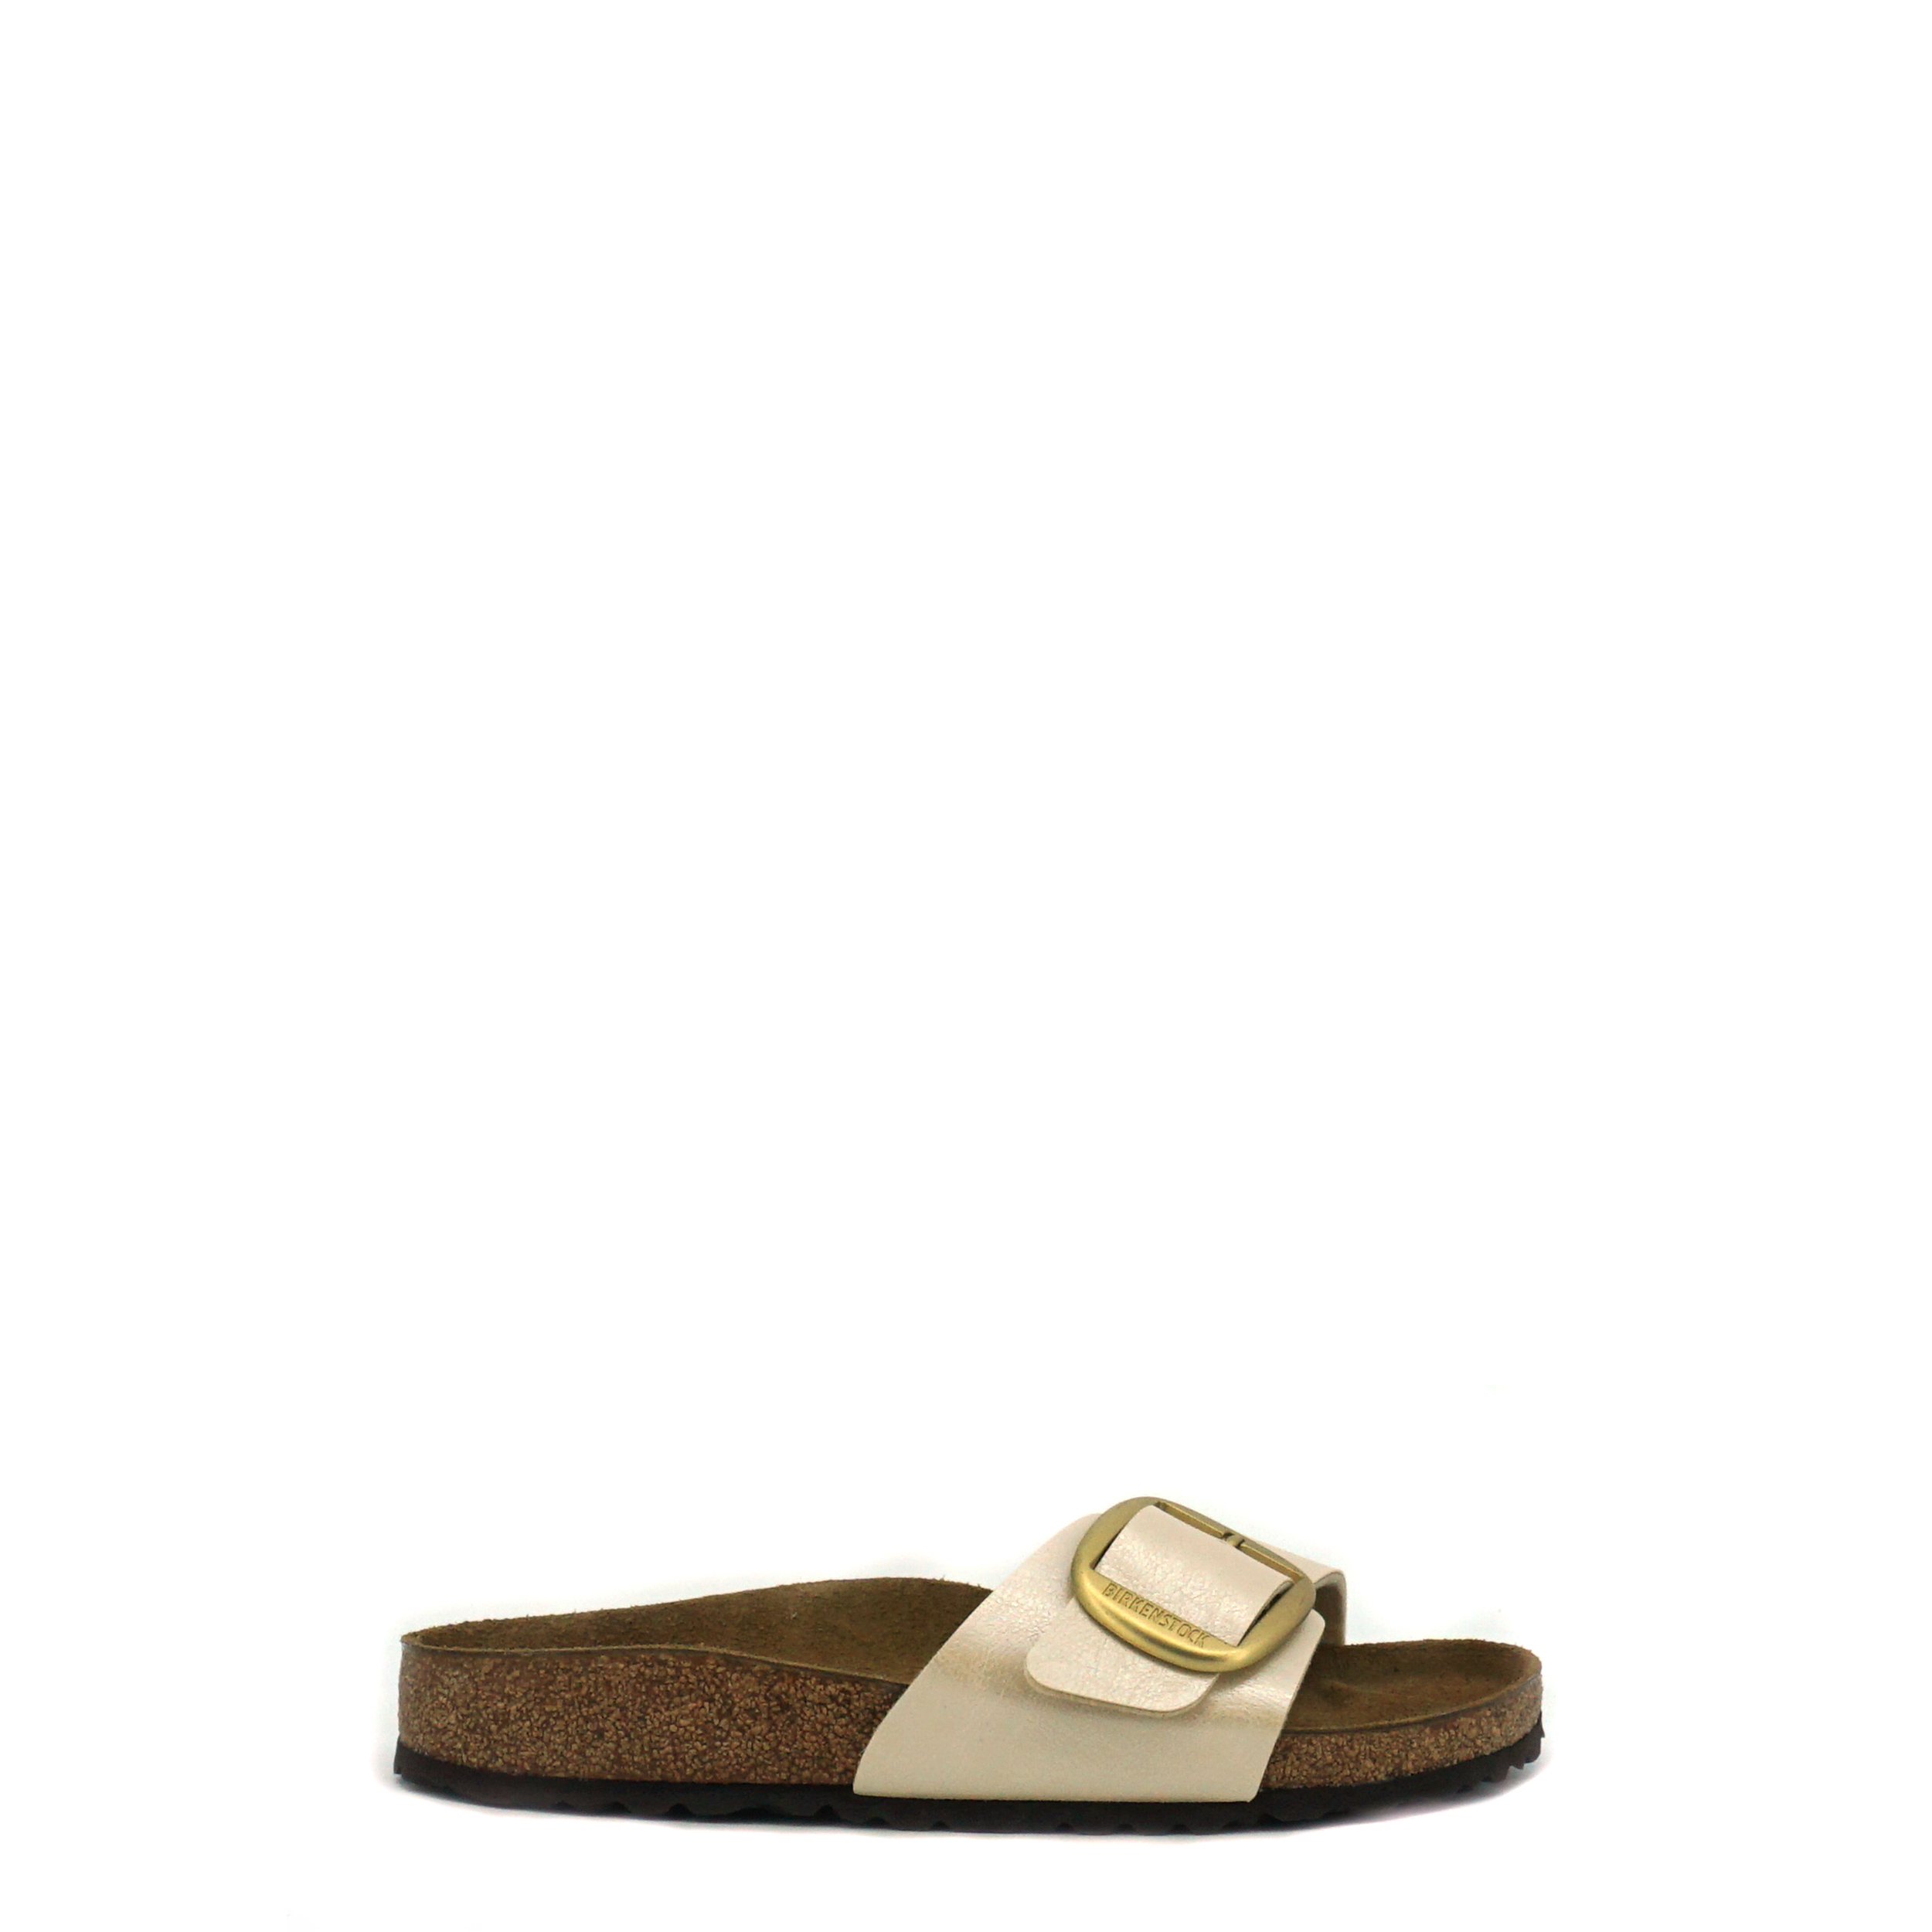 Birkenstock Madrid wit slipper dames